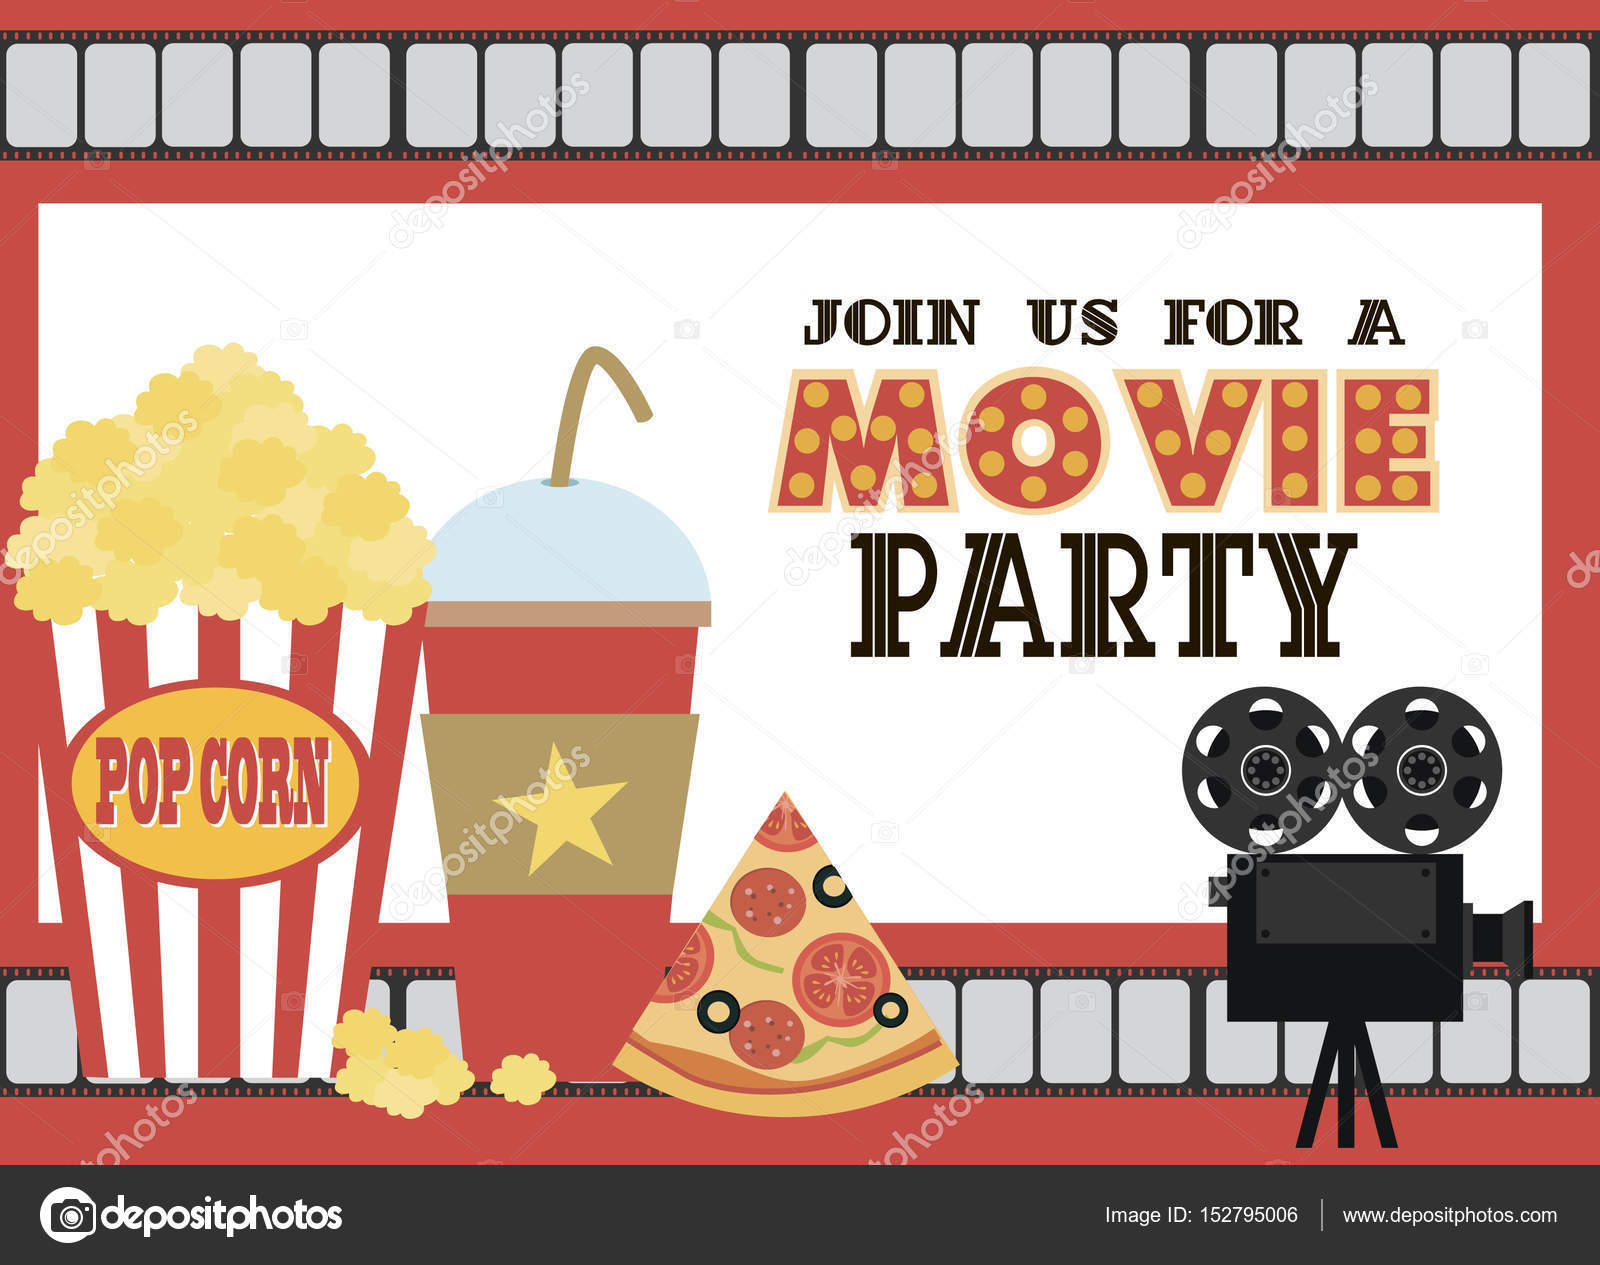 Movie Birthday party invitation card — Stock Vector © Vissay #152795006